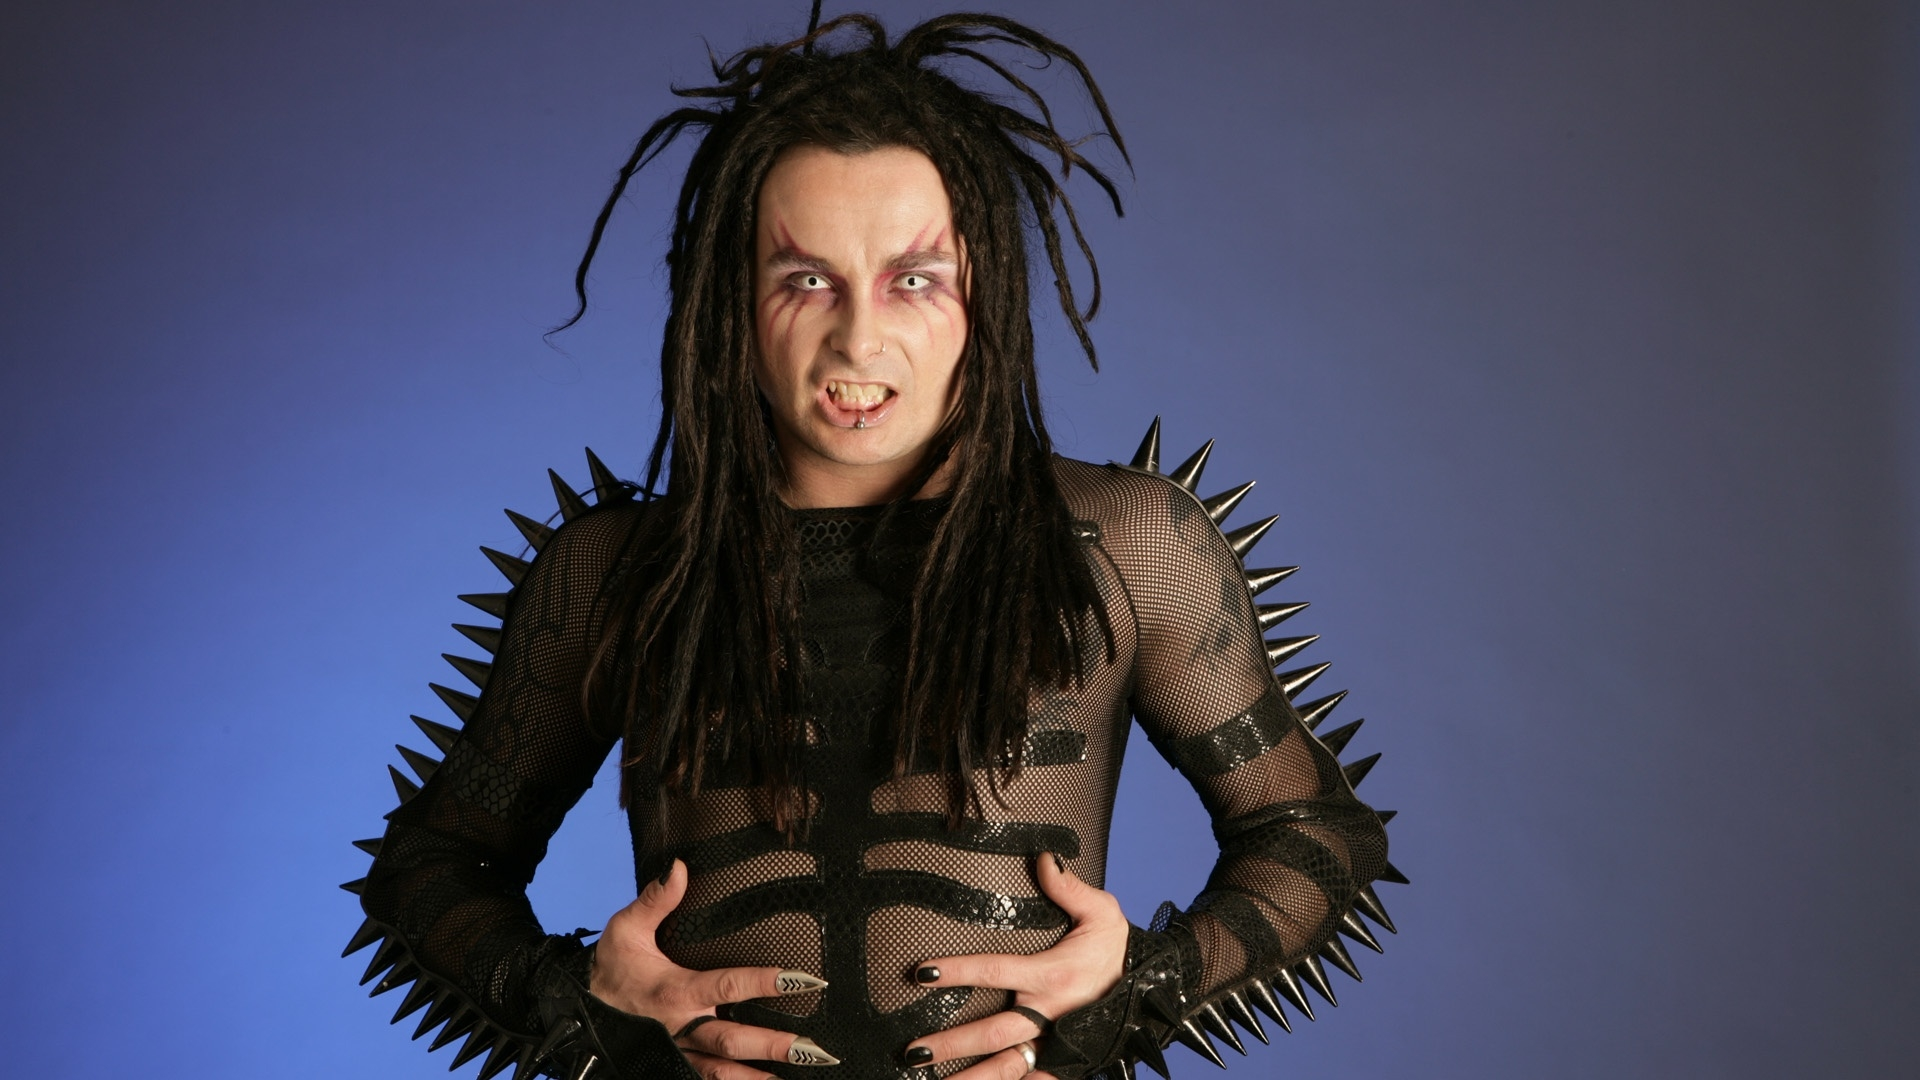 Amazing Wallpaper Movie Filth - cradle_of_filth_solo_rocker_fear_make-up_1758_1920x1080  Pictures_74784.jpg